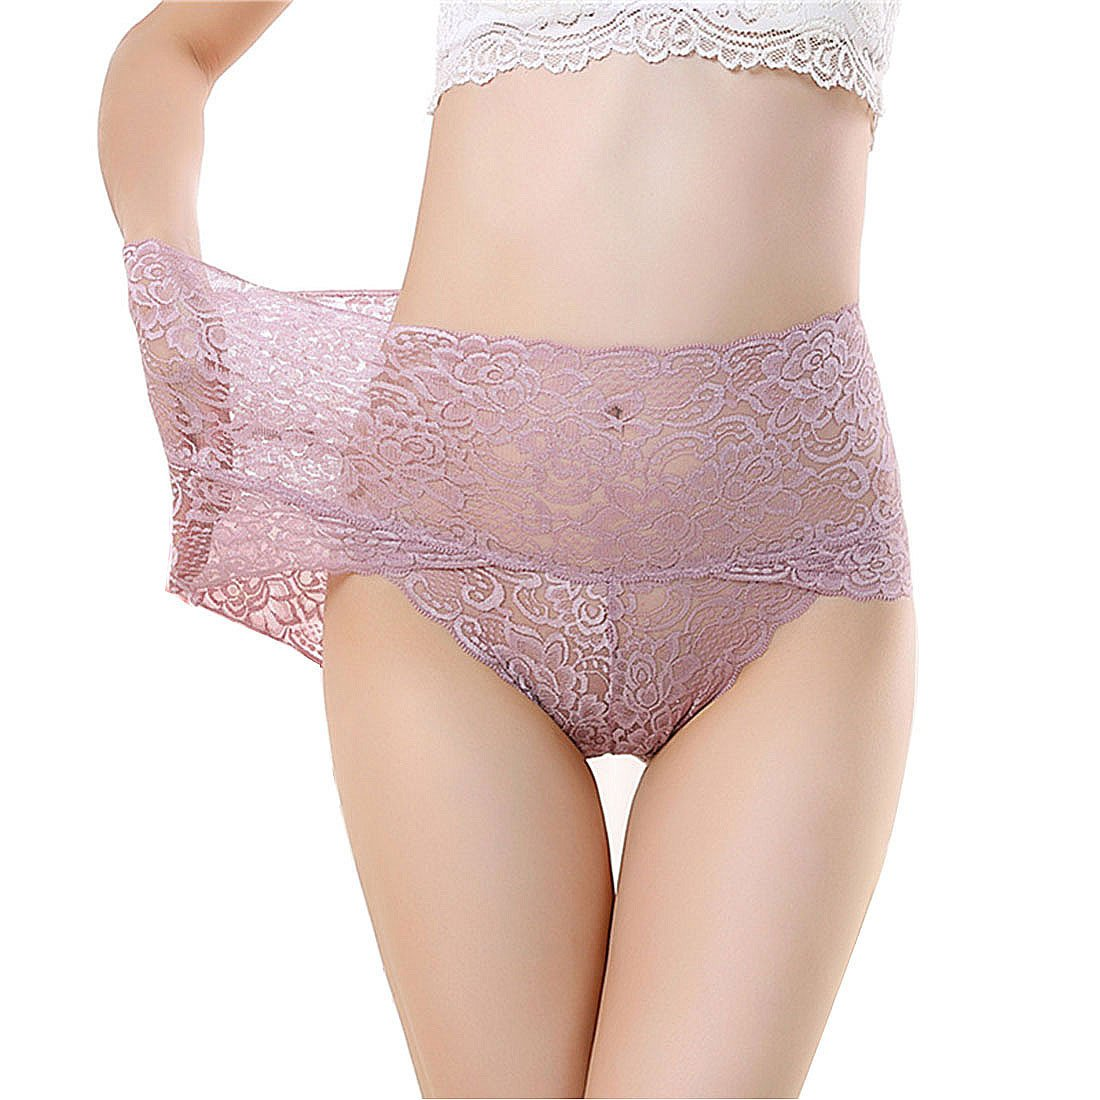 cool nik Briefs for Women Nylon, Women's Constant Comfort ComfortBlend Hipster Panty Pink XL